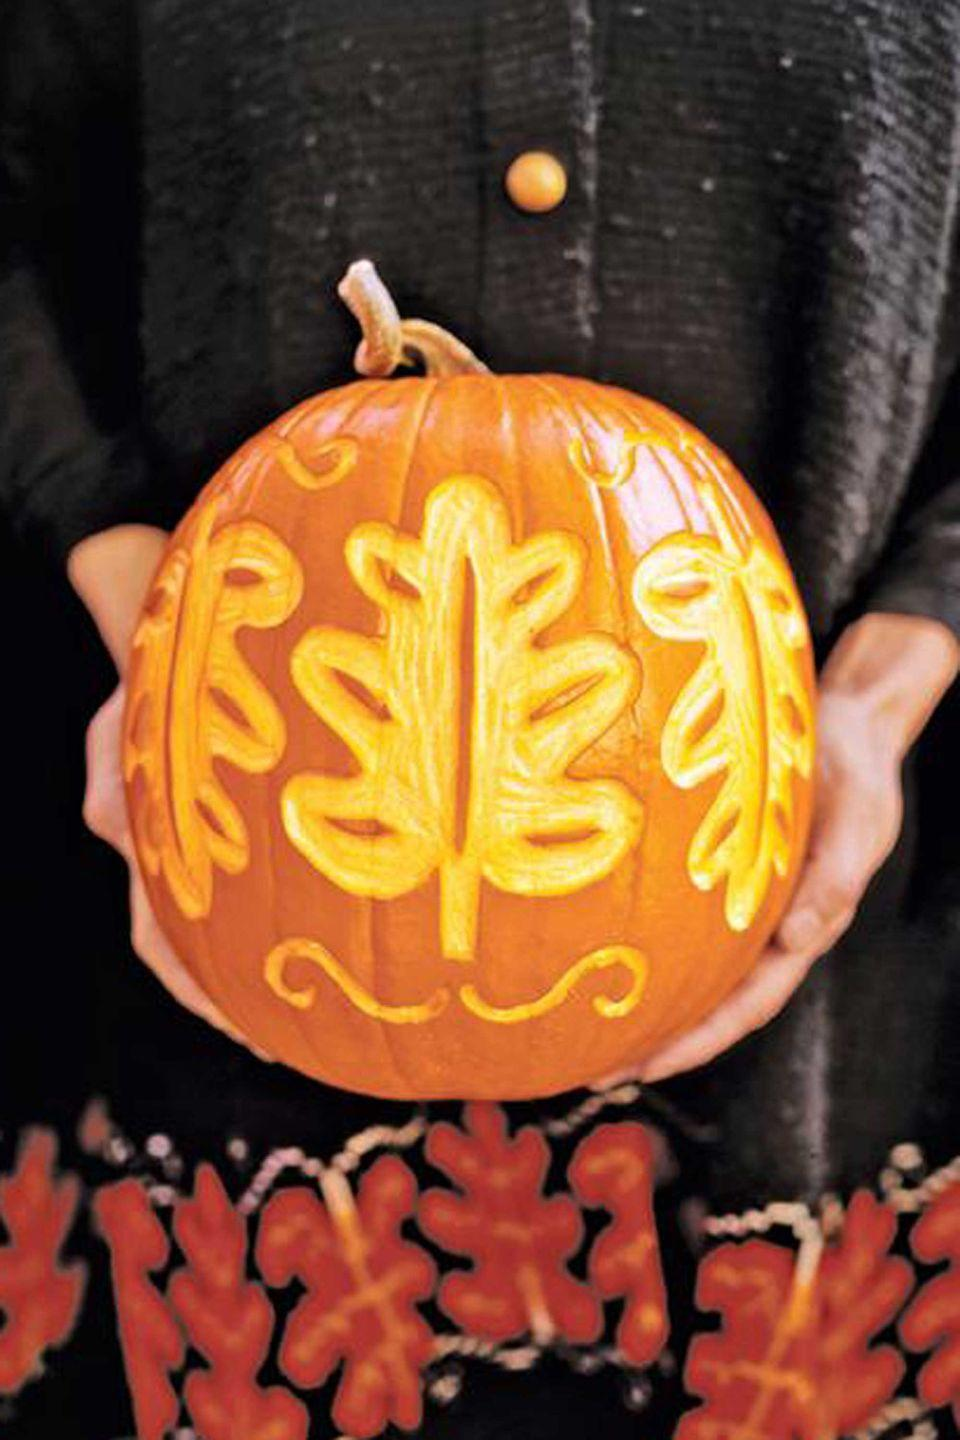 <p>A shallow leaf pattern is the perfect seasonal motif for this pumpkin. Use a linoleum cutter to cut out the design, leaving small pieces to suggest leaf veins.</p><p><strong>TIP:</strong> Don't hollow out the pumpkin if you don't want to illuminate it.</p>